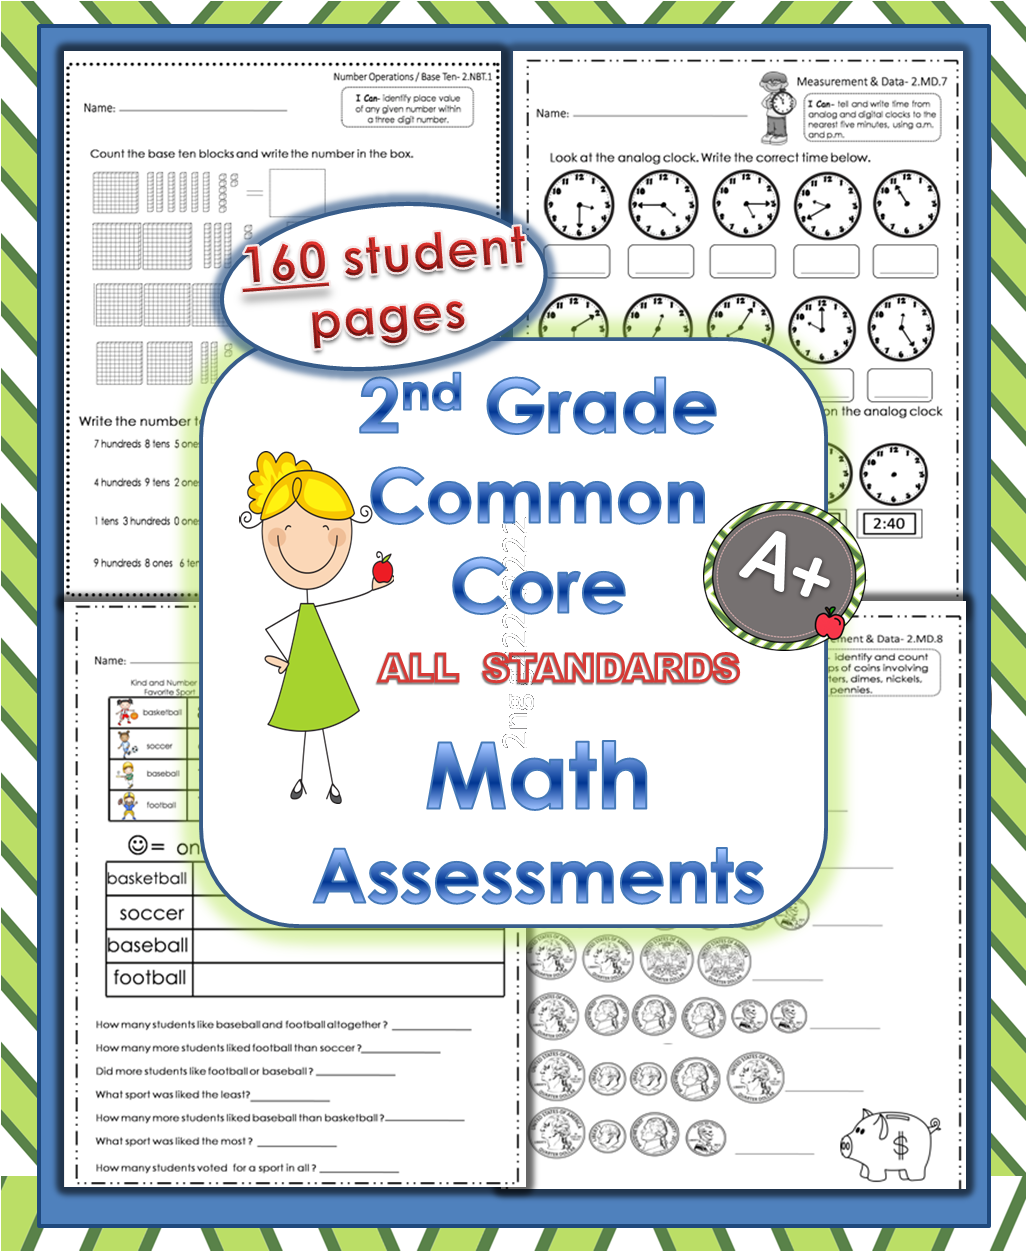 Teaching Times 2 2nd Grade Common Core Math Assessments